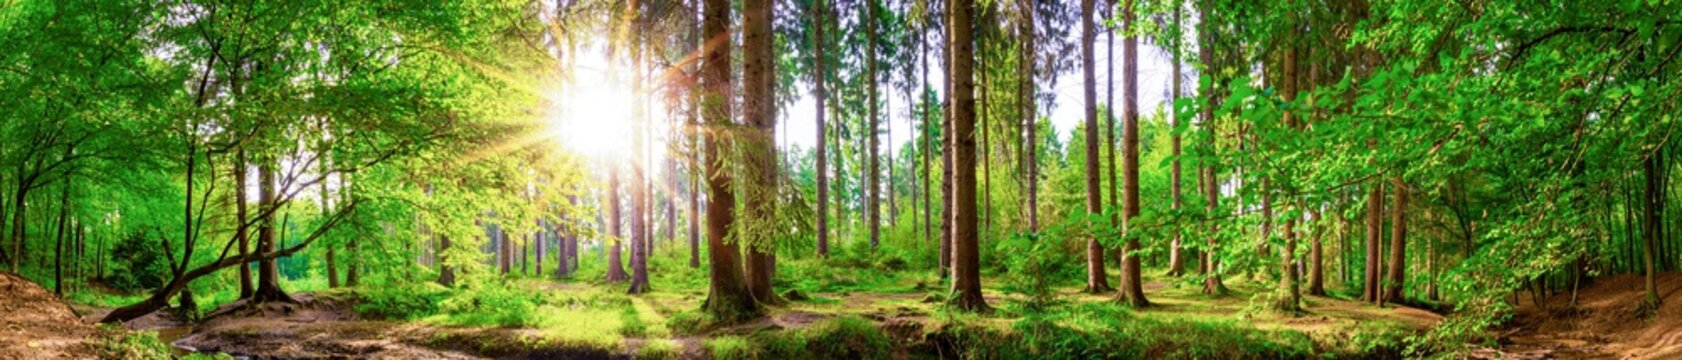 Beautiful forest panorama with large trees and bright sun